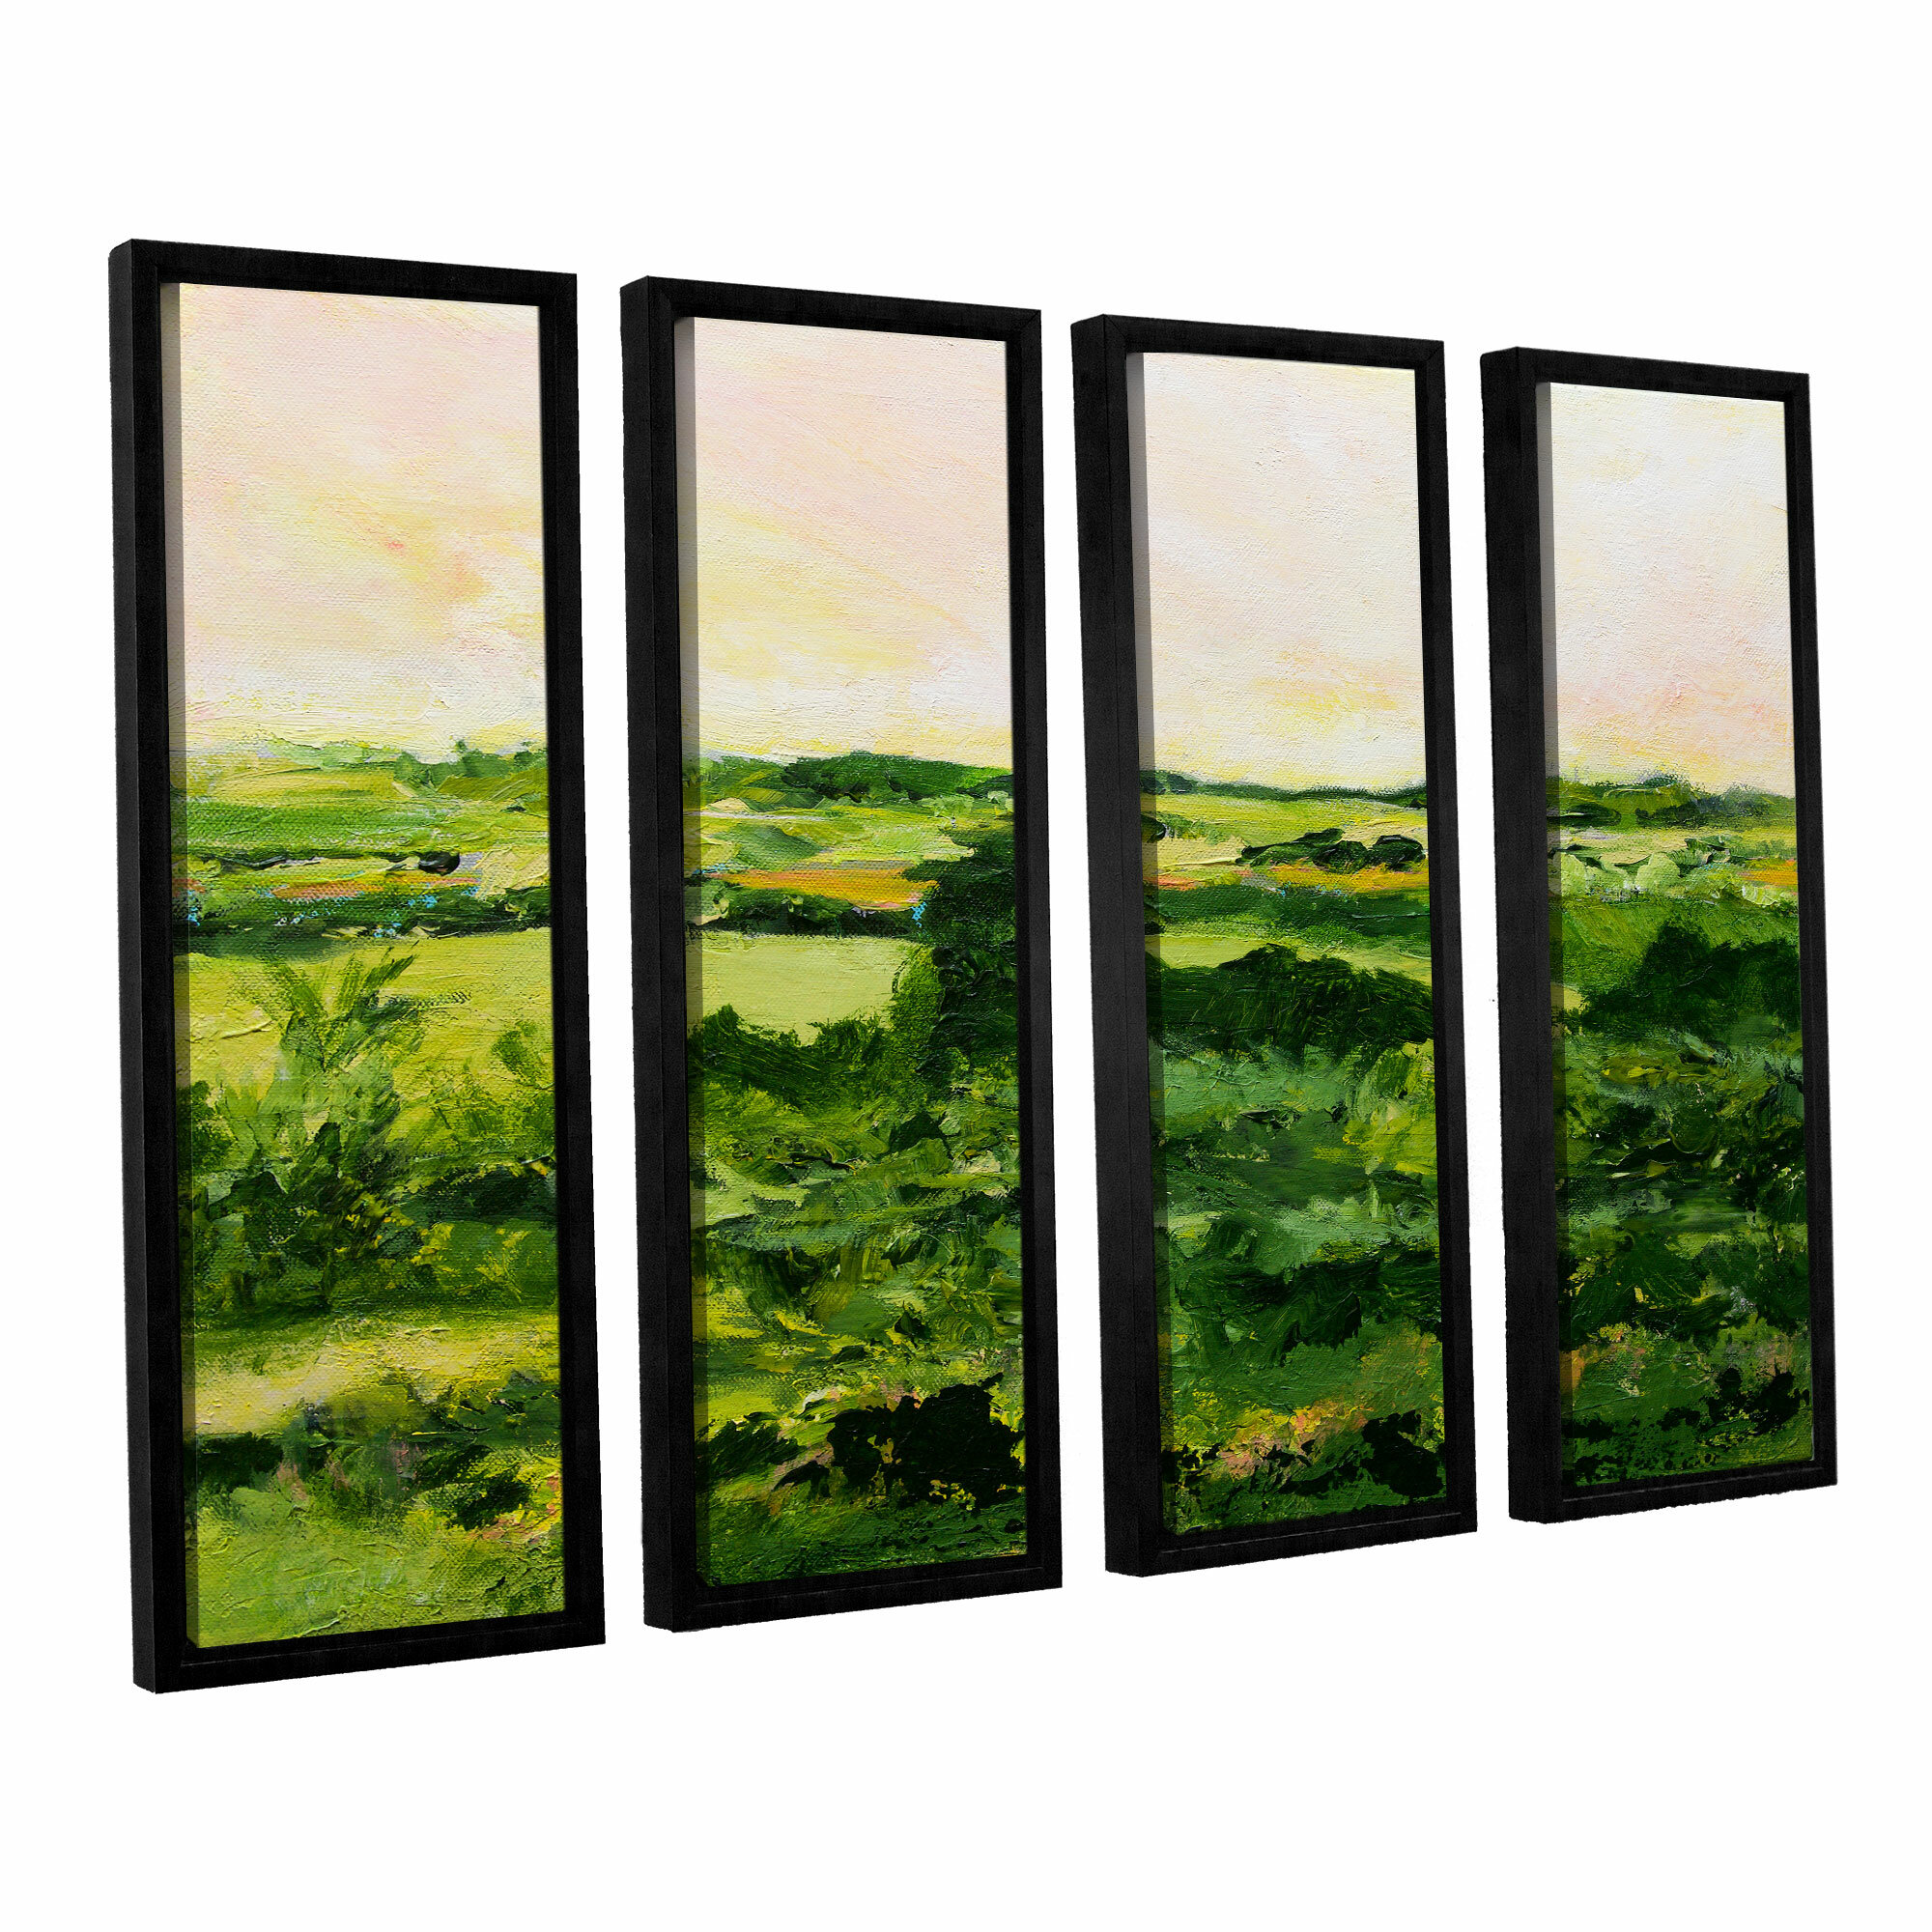 Darby home co perry green 4 piece framed painting print on for Best brand of paint for kitchen cabinets with iron man wall art